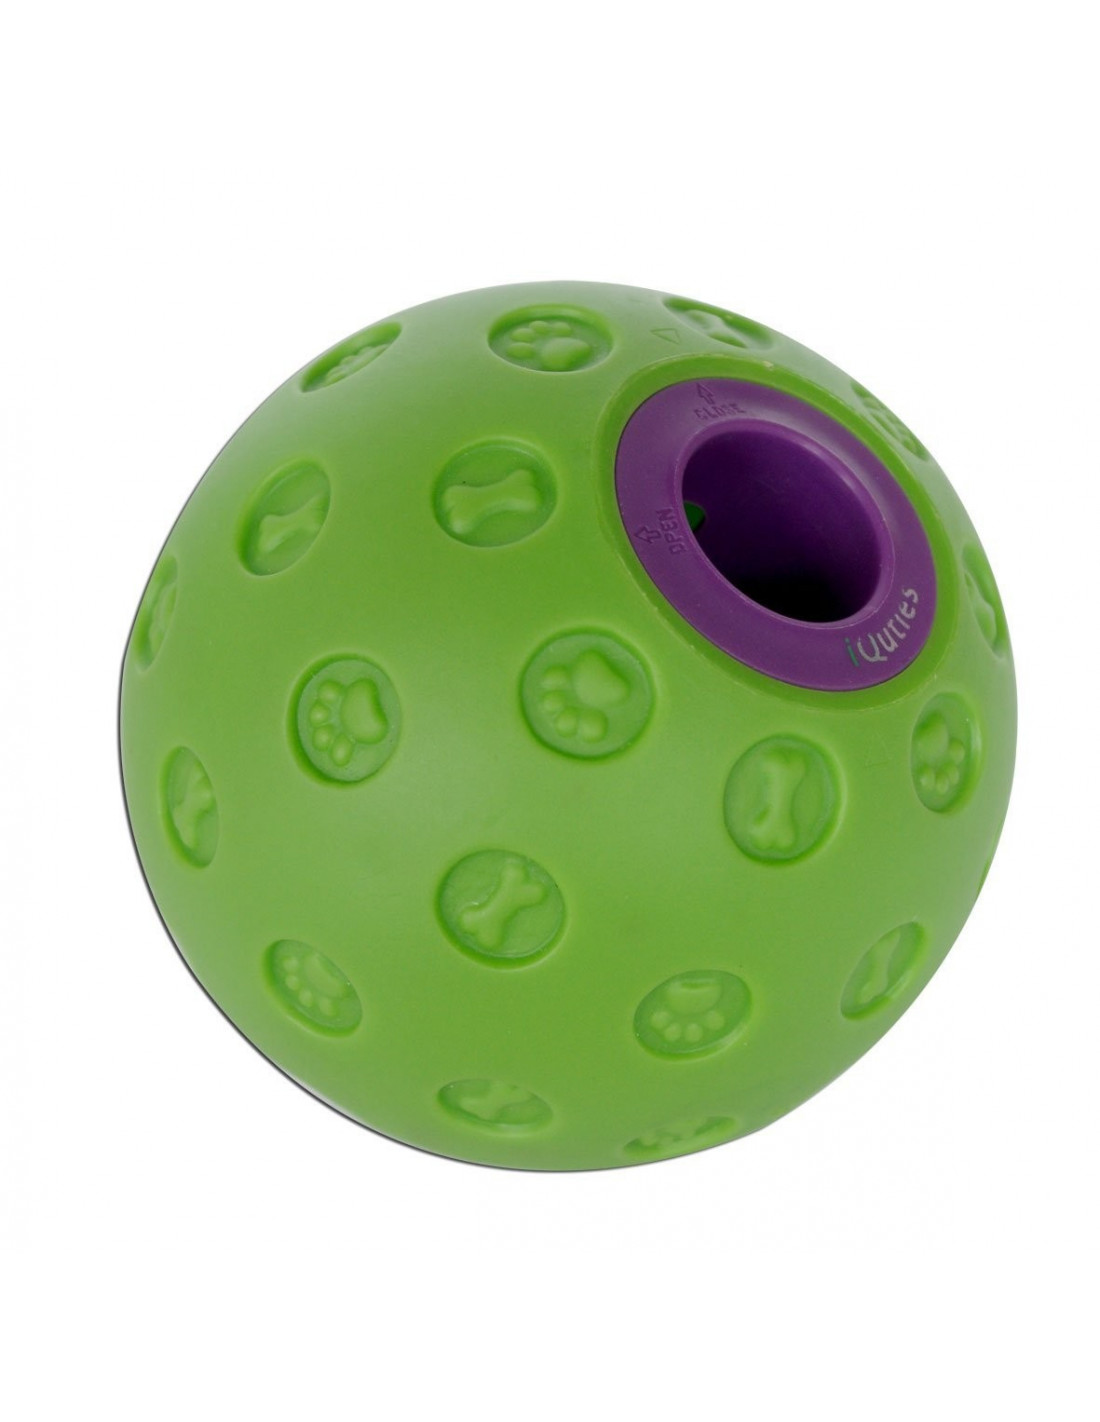 Large Dog Toys Balls : Iquities snack ball large dog toy